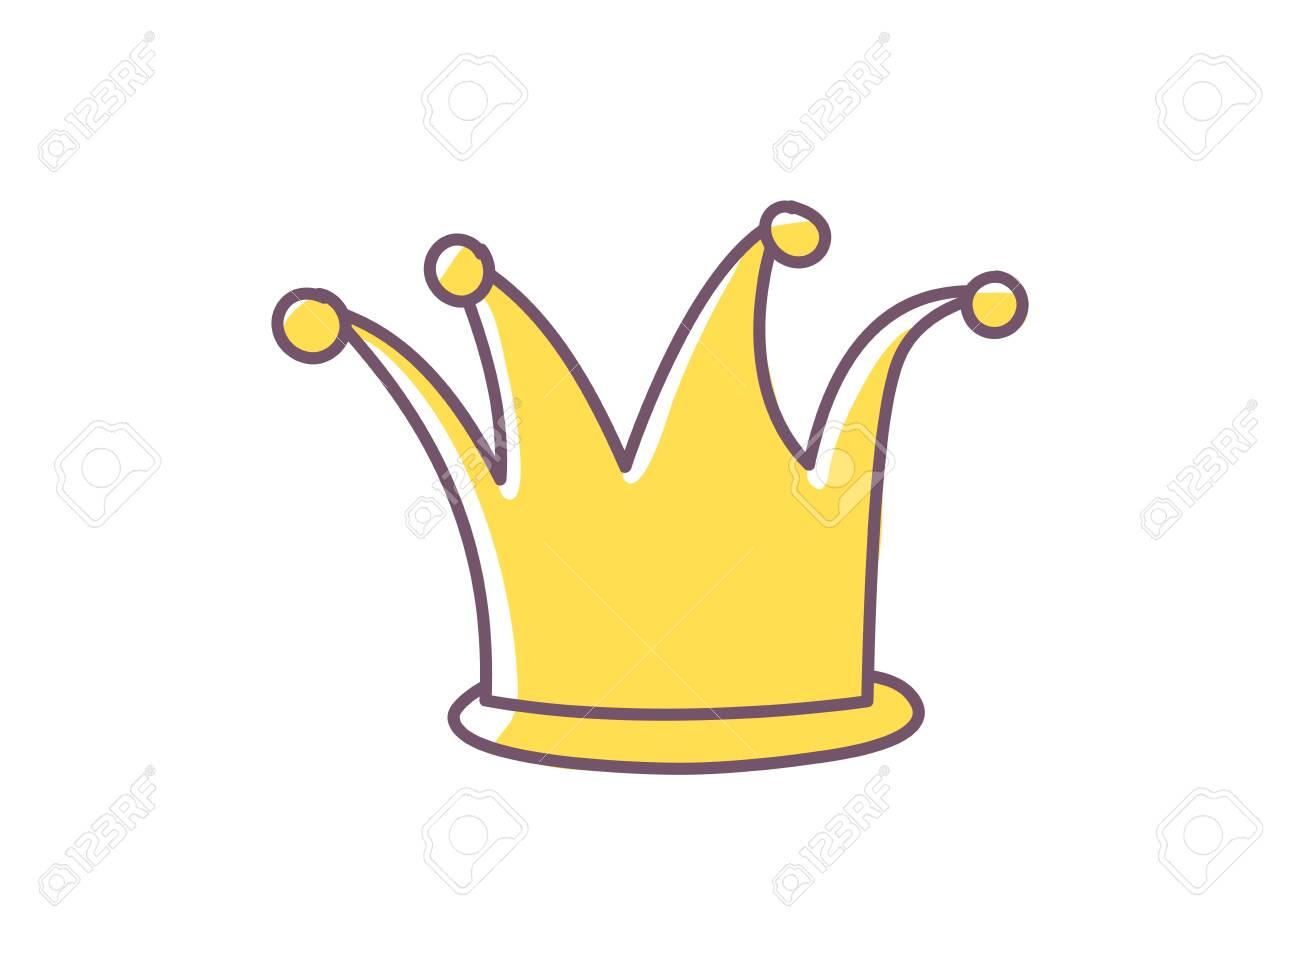 Golden Cartoon Doodle Illustration Funny King Queen Princess Royalty Free Cliparts Vectors And Stock Illustration Image 138091226 Here you can explore hq cartoon crown transparent illustrations, icons and clipart with filter setting like size, type, color etc. golden cartoon doodle illustration funny king queen princess